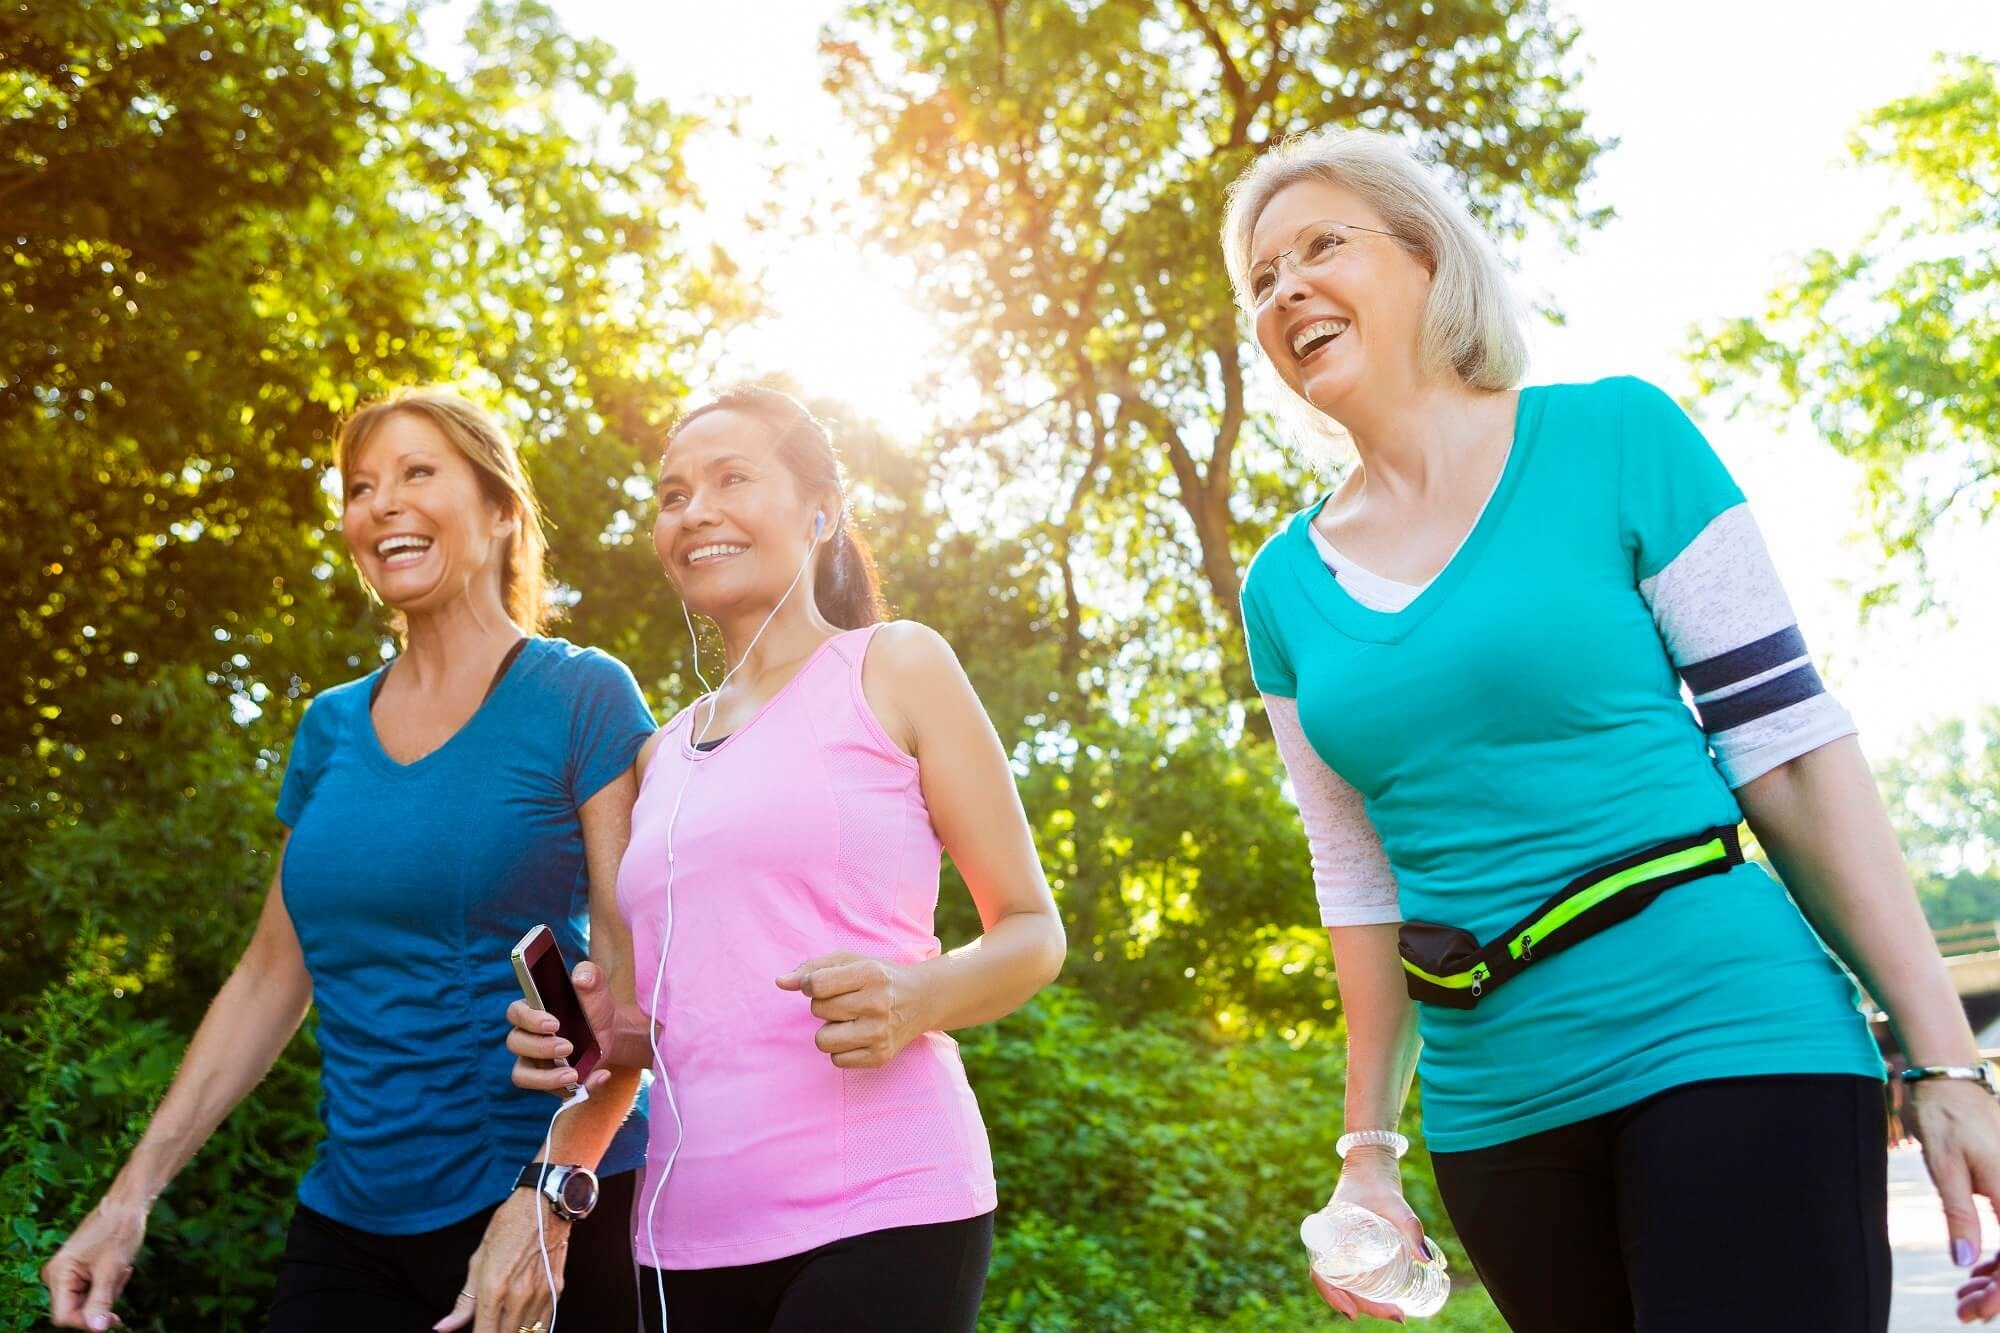 Compared with patients who remained inactive, previously inactive patients who began exercising after diagnosis experienced reductions in all-cause and cancer-specific mortality.